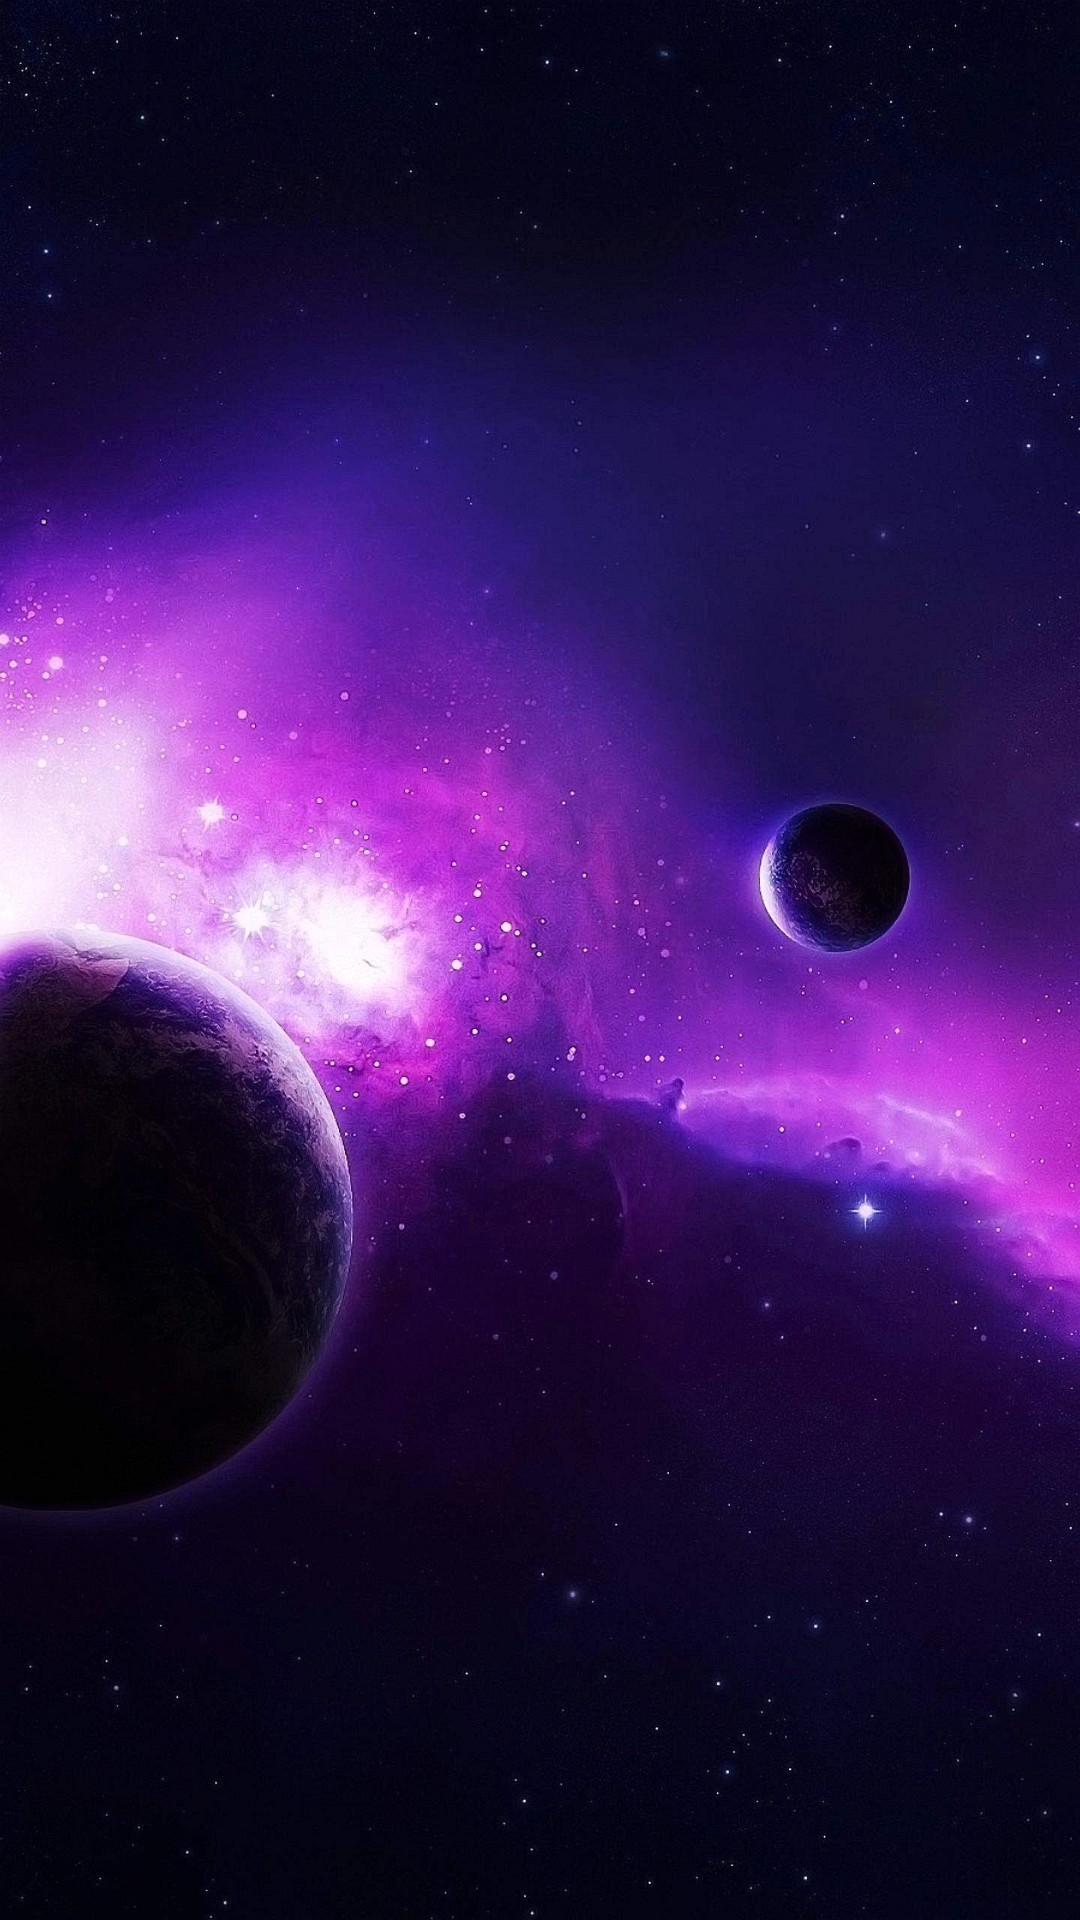 1080x1920 Wallpaper Iphone 6 Plus Violet Space 5 Inches